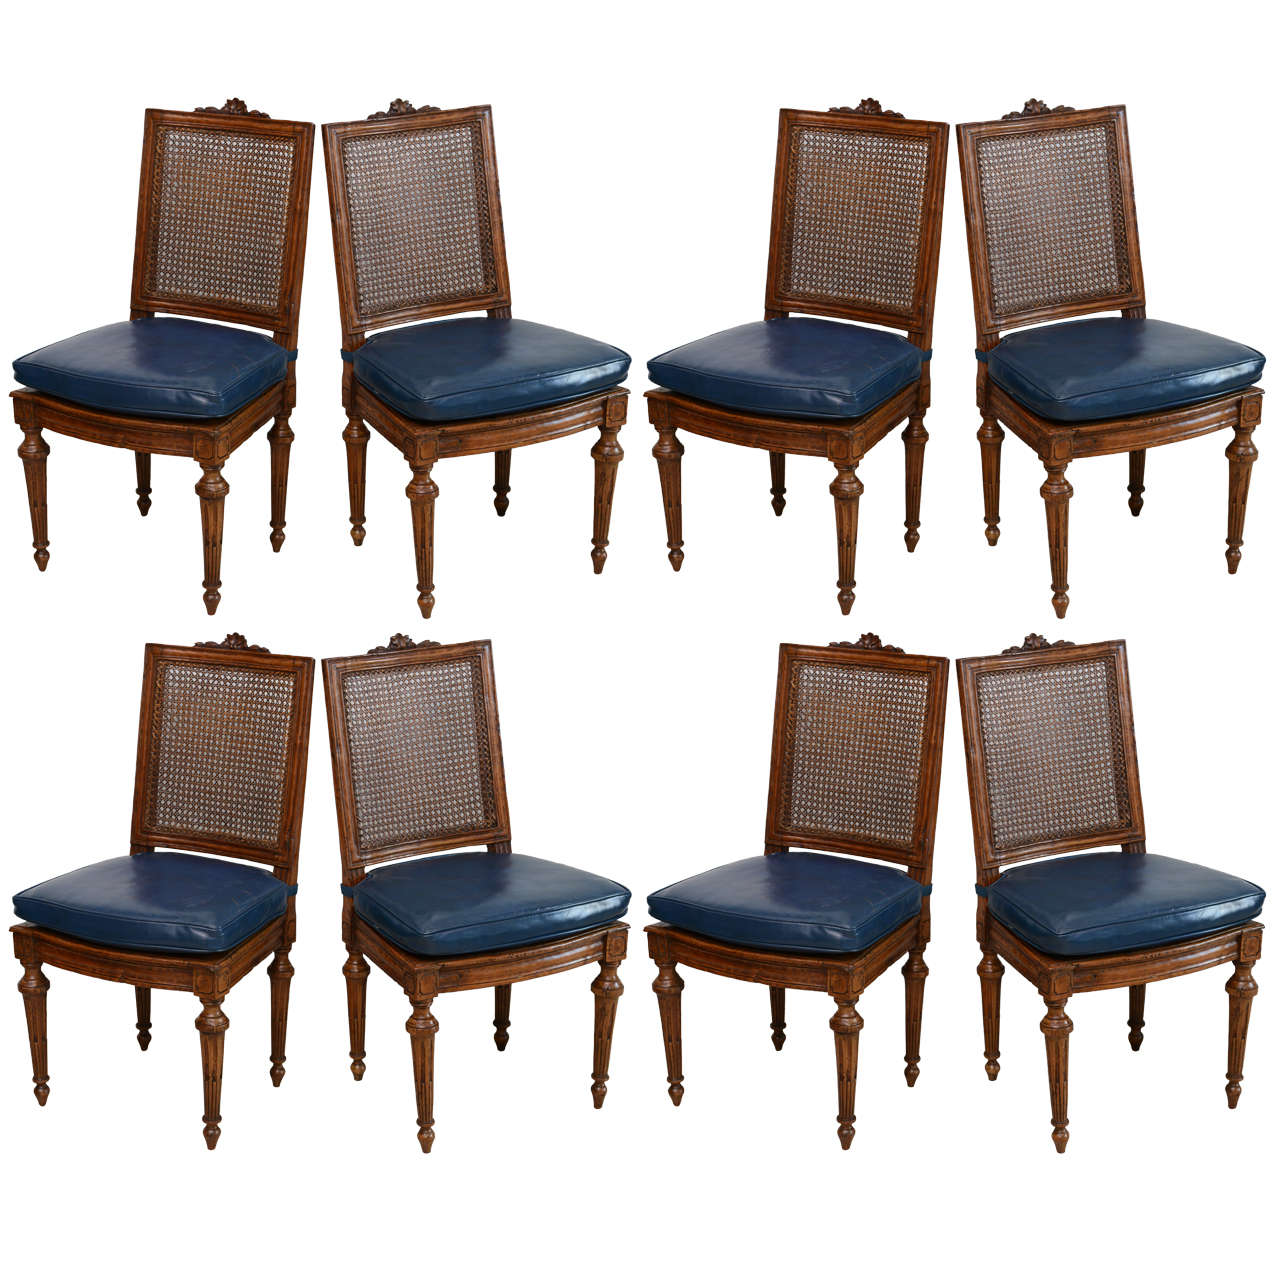 Set Of Eight Louis XVI Beechwood Dining Chairs Late 18th Century For Sale